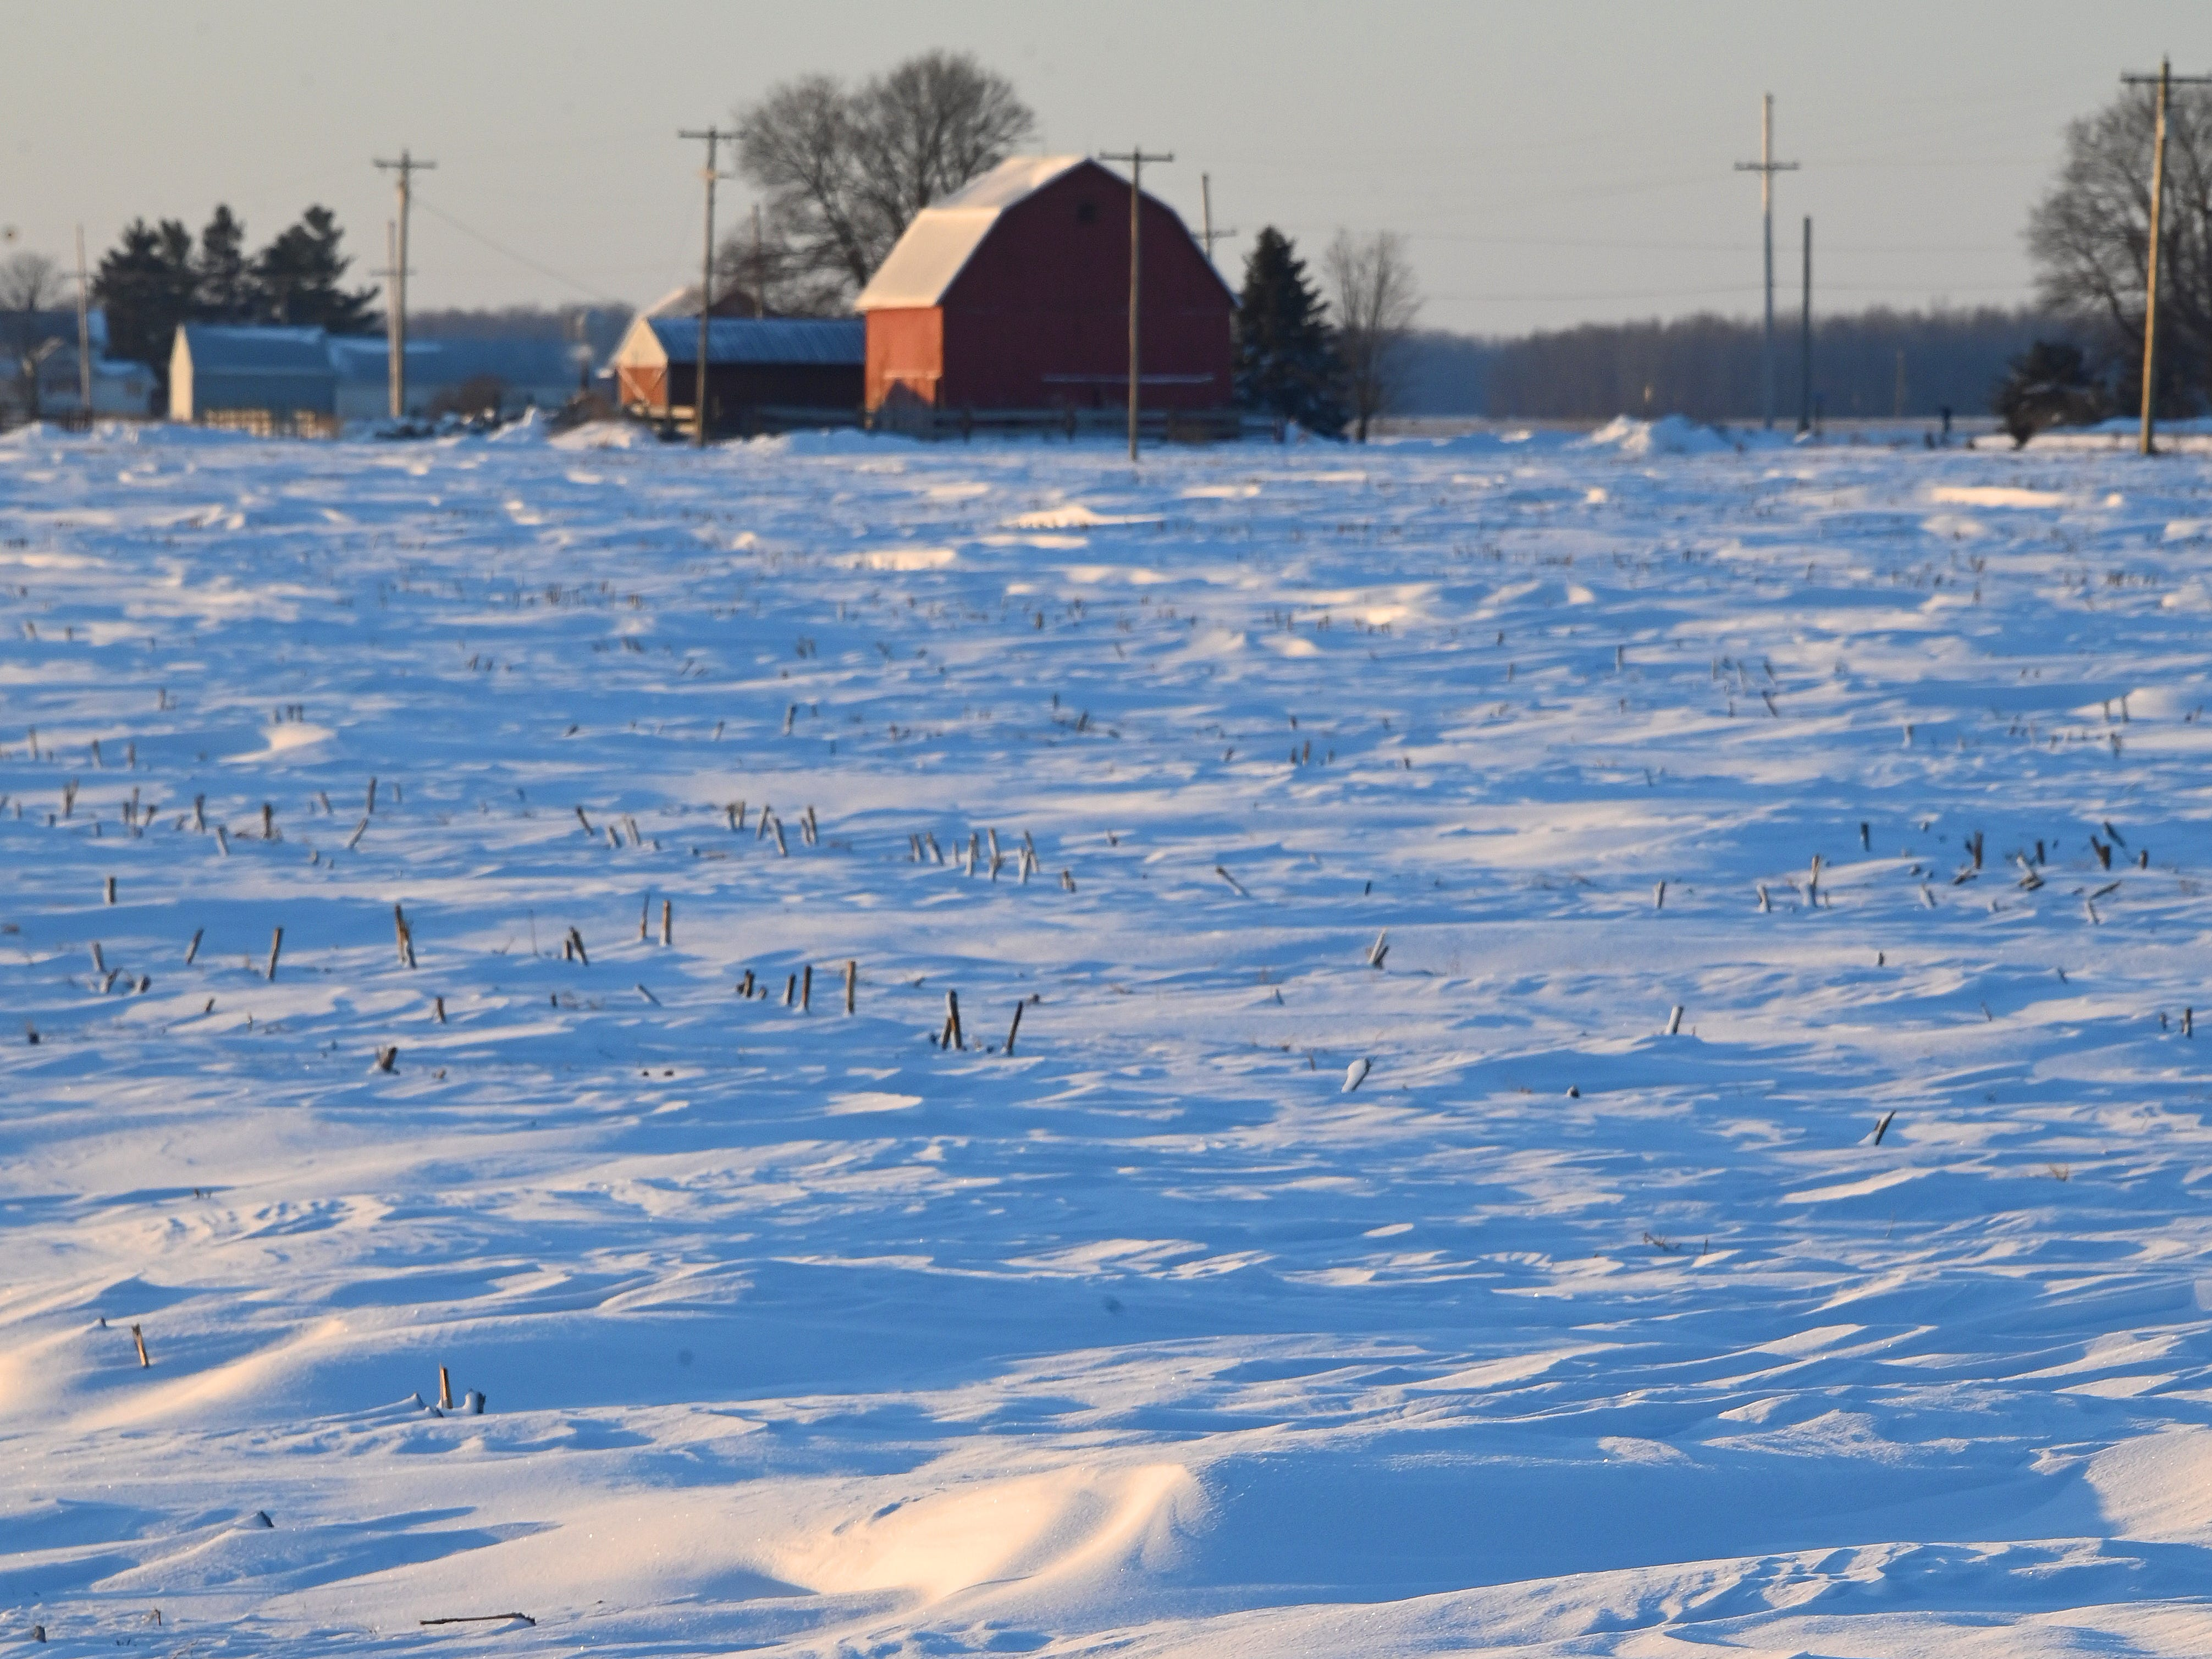 A weak sun rises above frozen fields and farms in mid Michigan near Maple Rapids on Thursday, Jan 31, 2019. Single-digit high temps are forecast for the day.